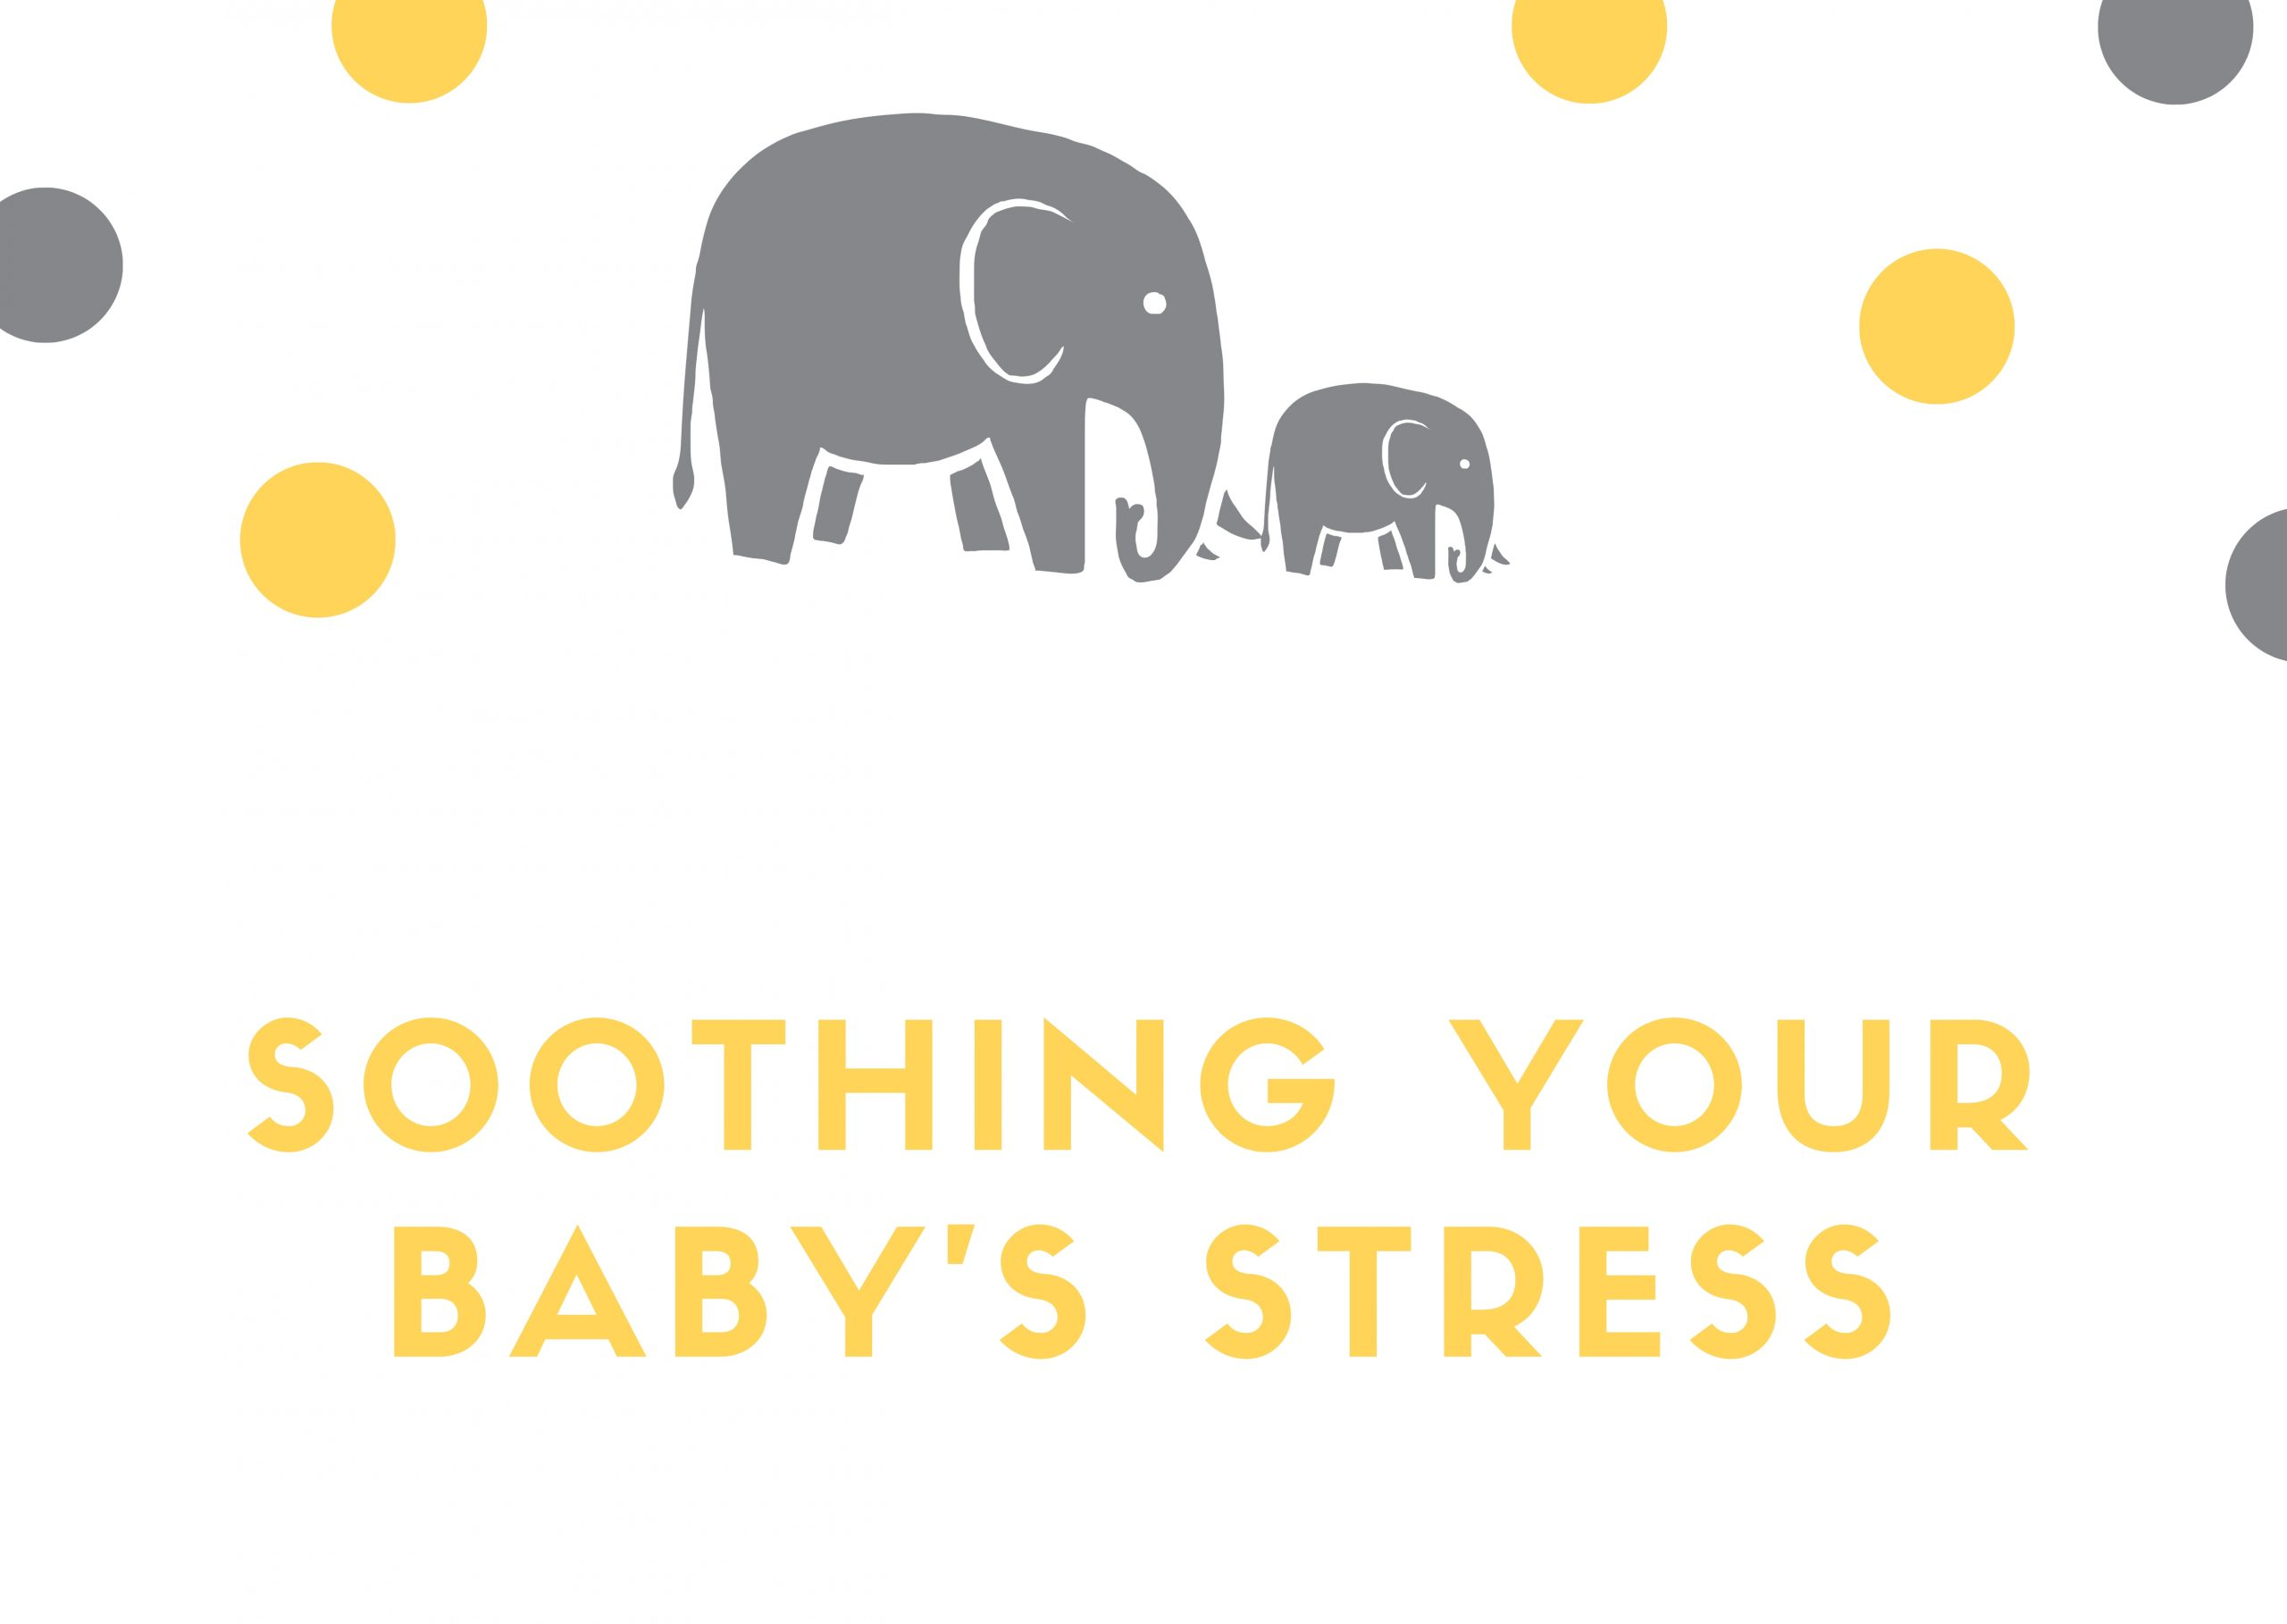 Soothing Baby's Stress